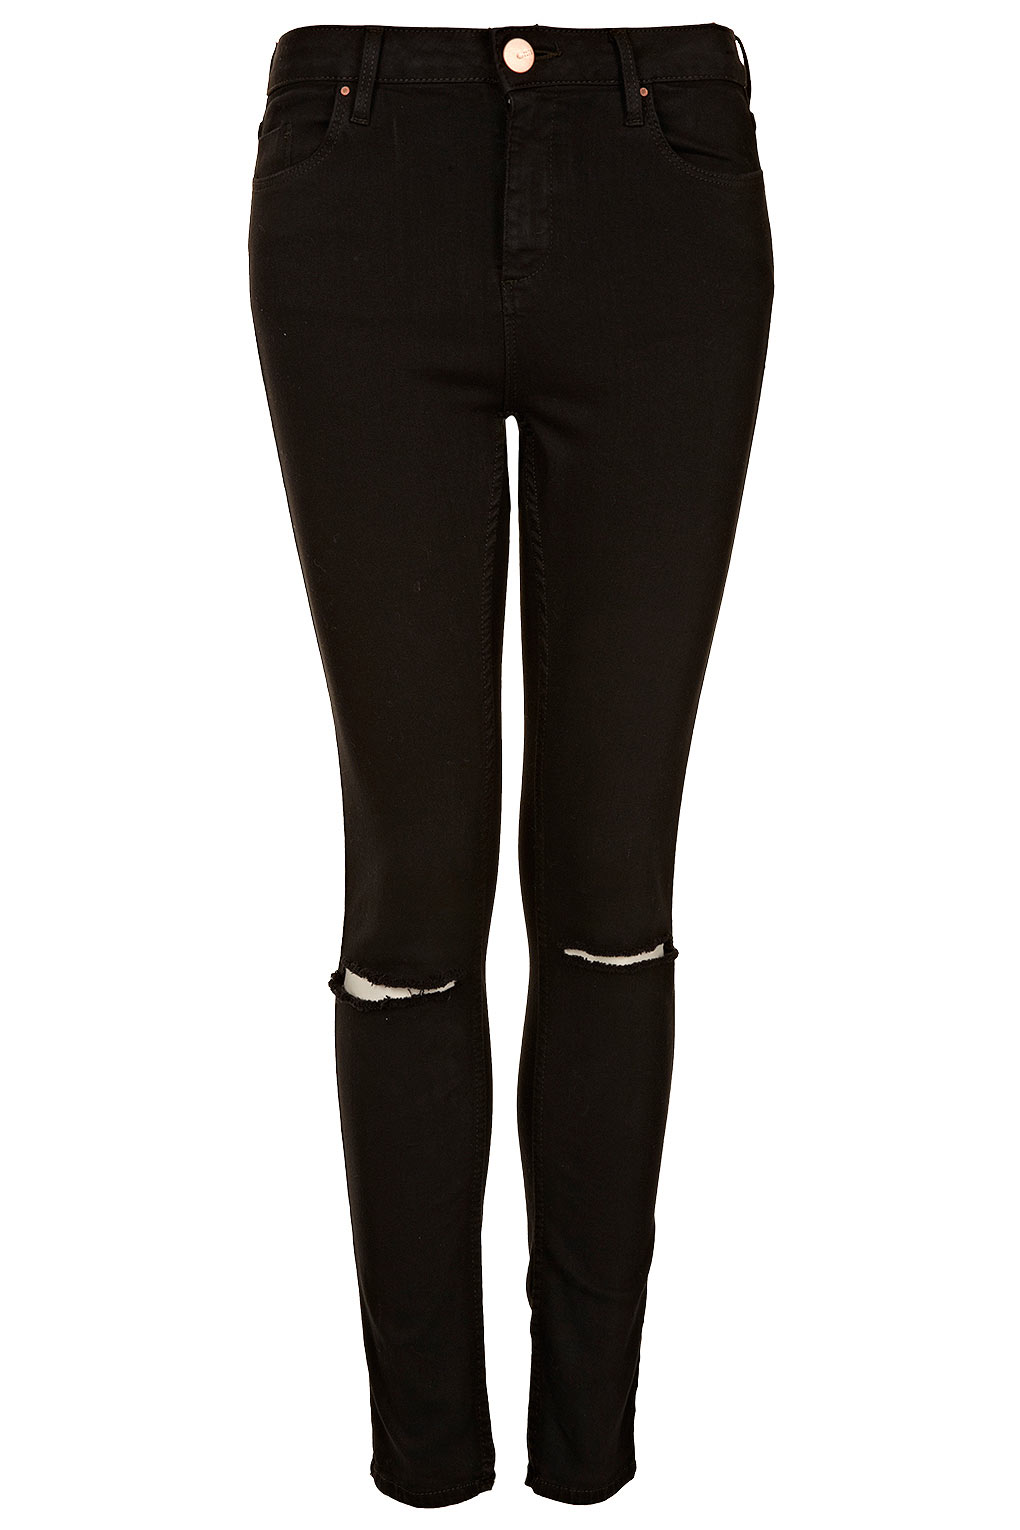 Topshop Black Rip Knee Jamie Jeans in Black | Lyst